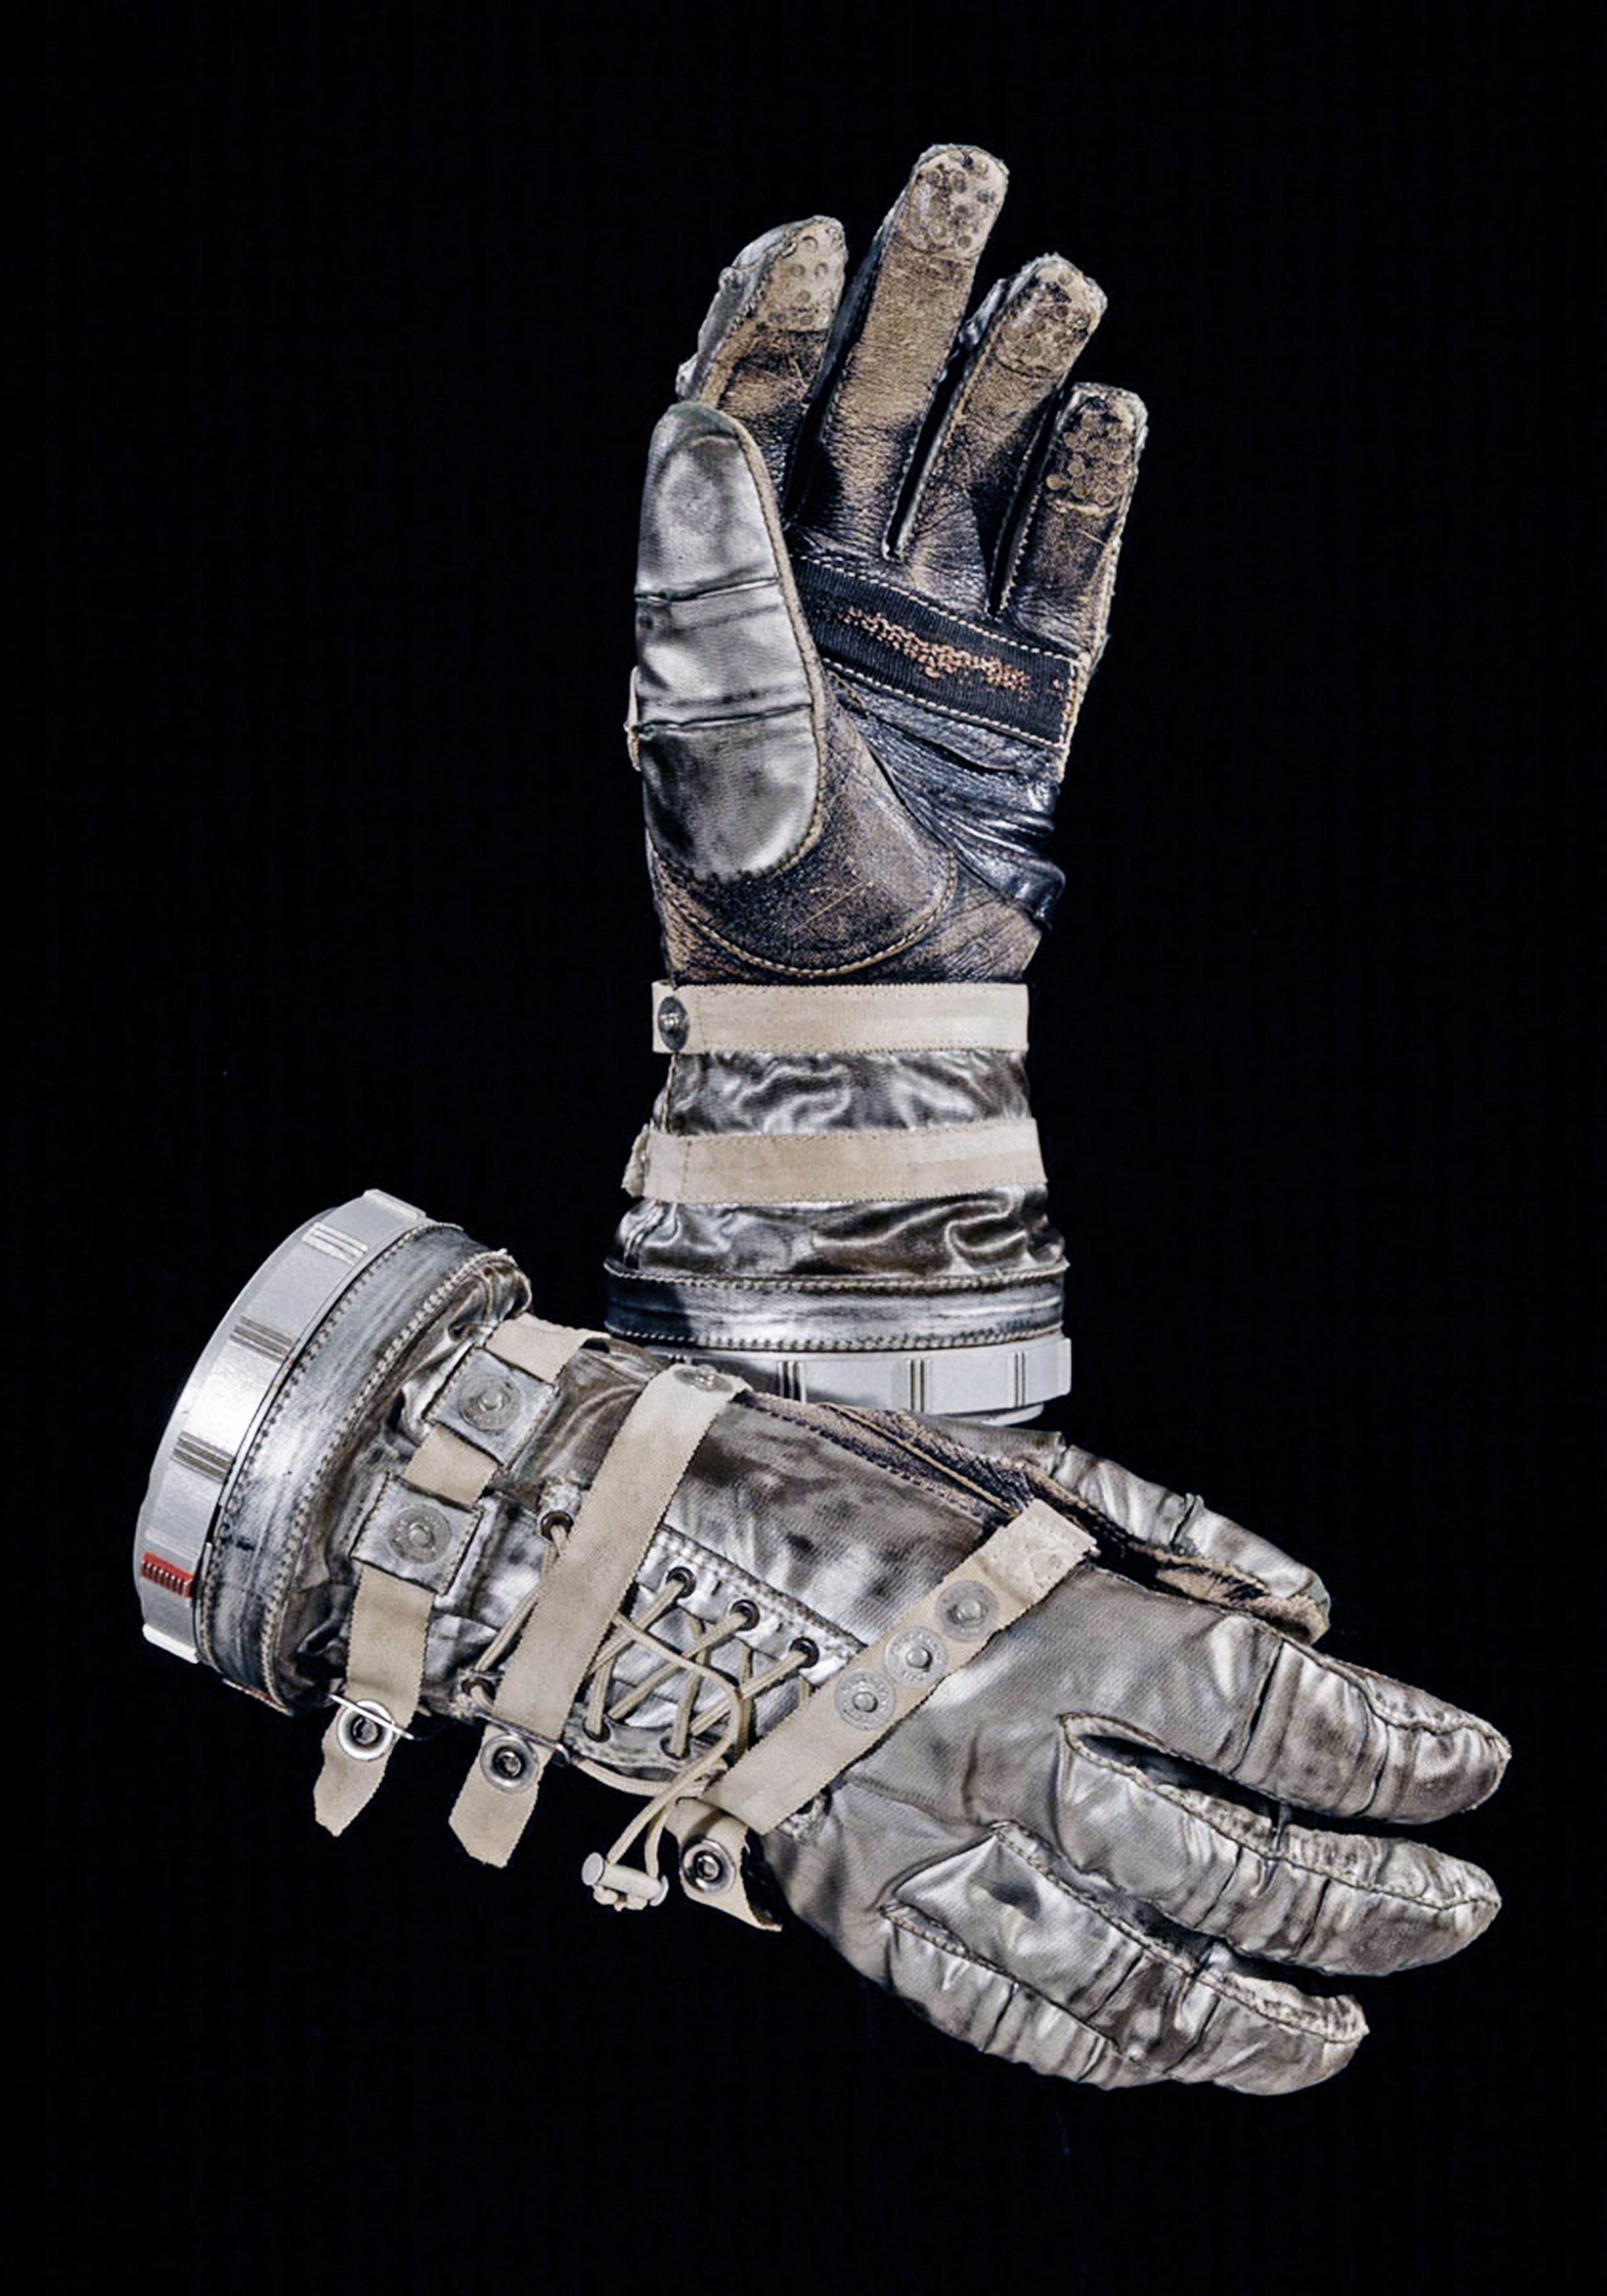 space suit glove hardware - photo #4